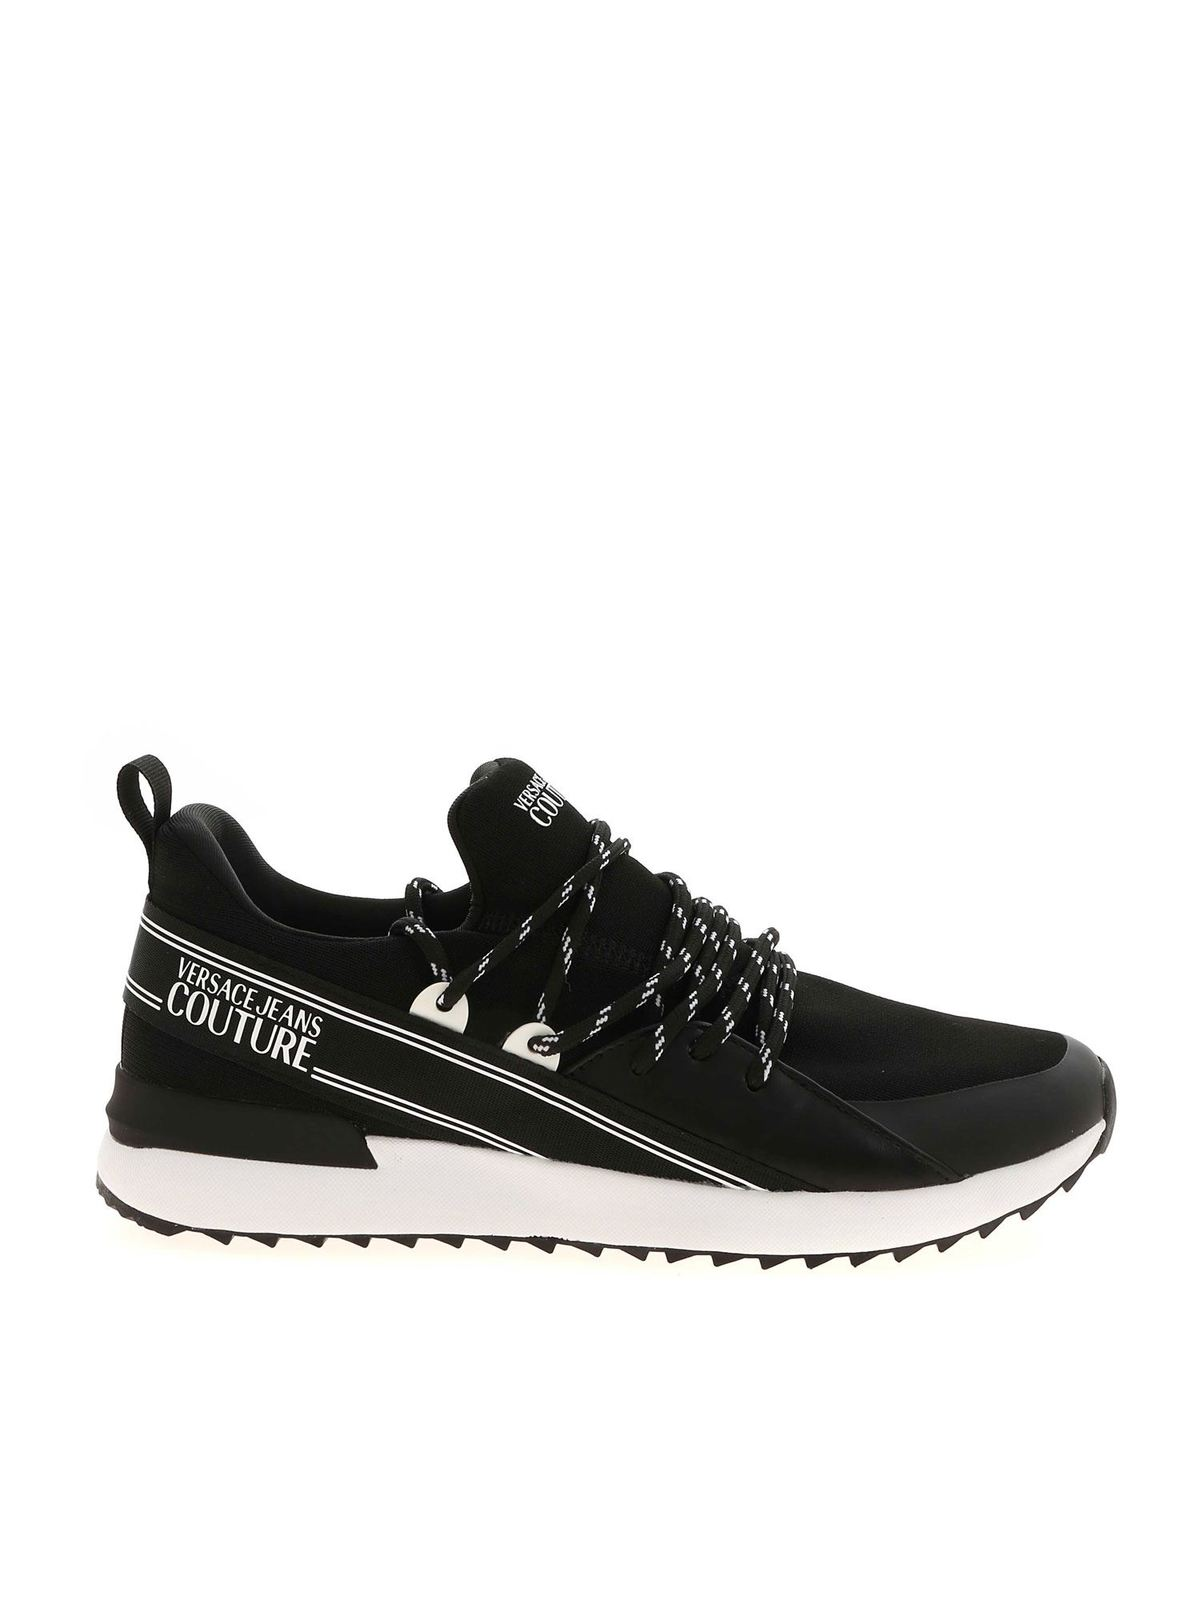 Versace Jeans Couture BLACK AND WHITE SNEAKERS